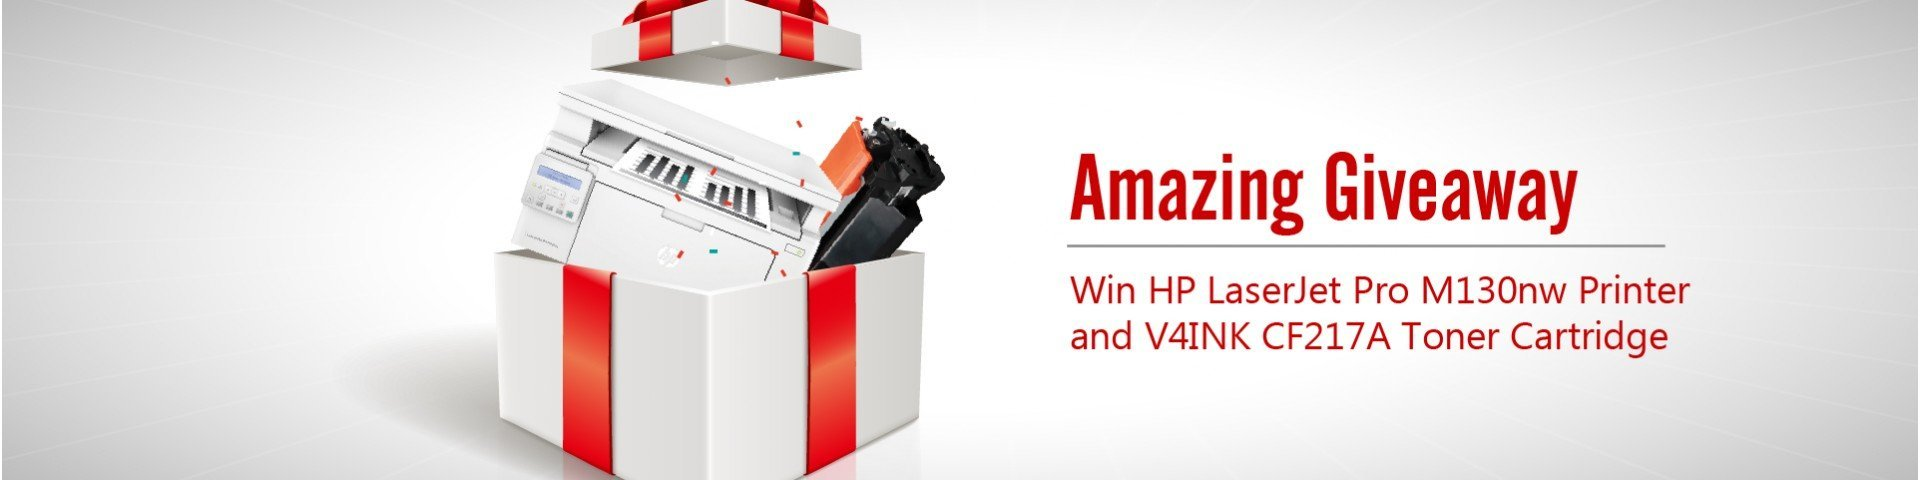 HP Printer and CF217A giveaway